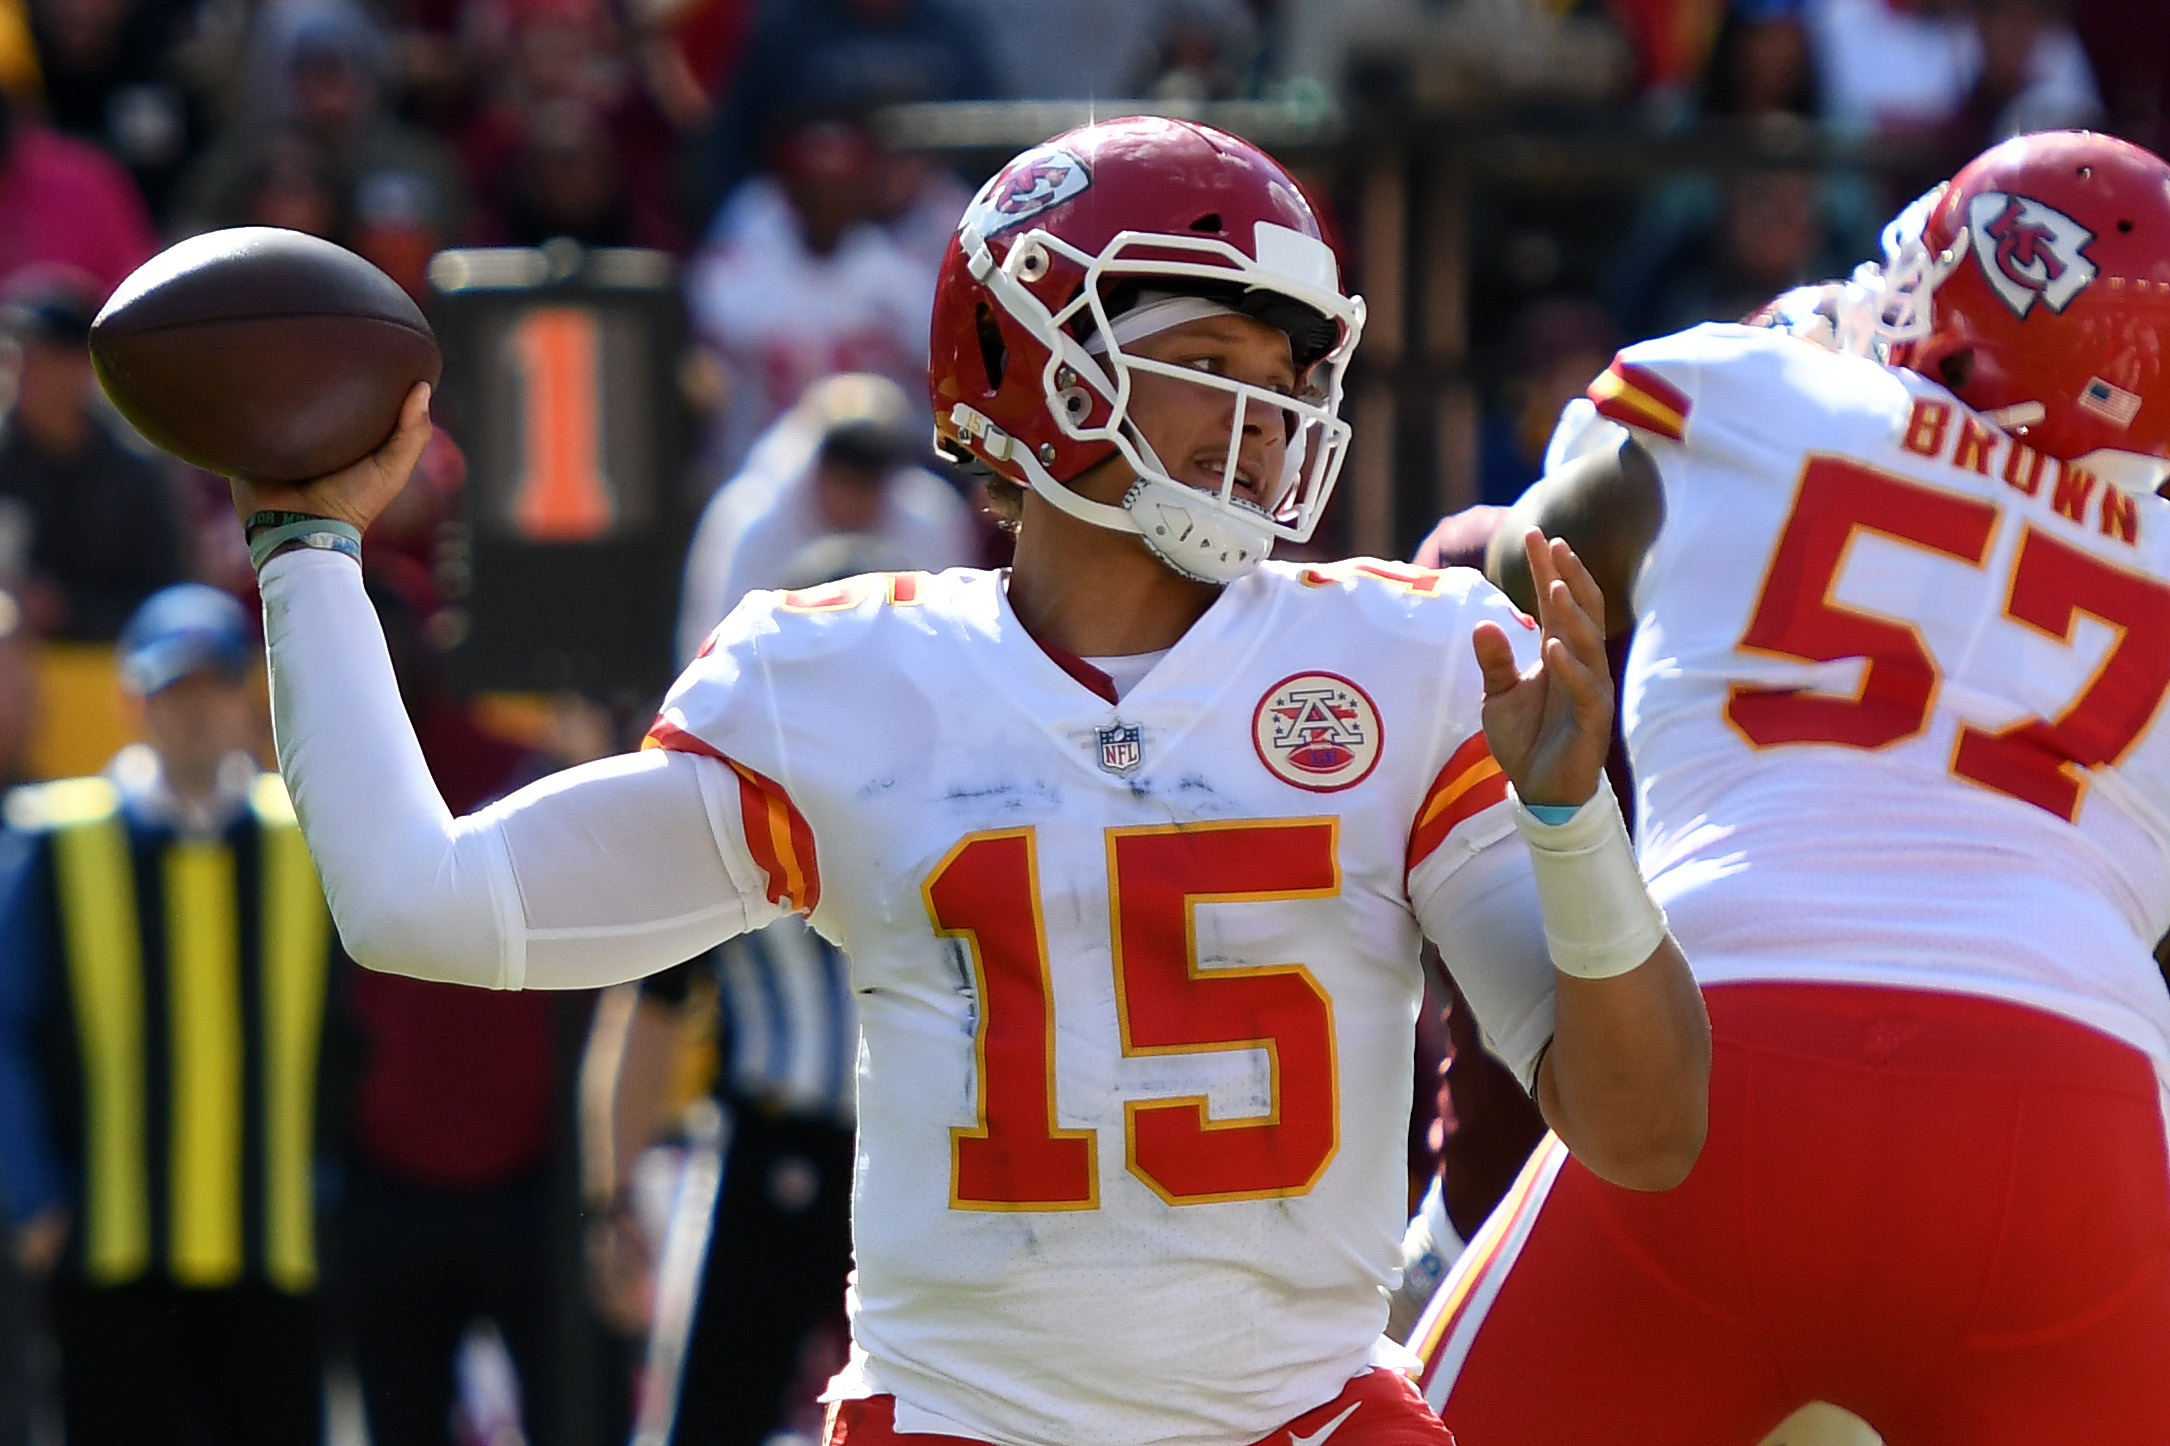 Patrick Mahomes #15 of the Kansas City Chiefs looks to throw the ball during the first half against the Washington Football Team at FedExField on October 17, 2021 in Landover, Maryland.